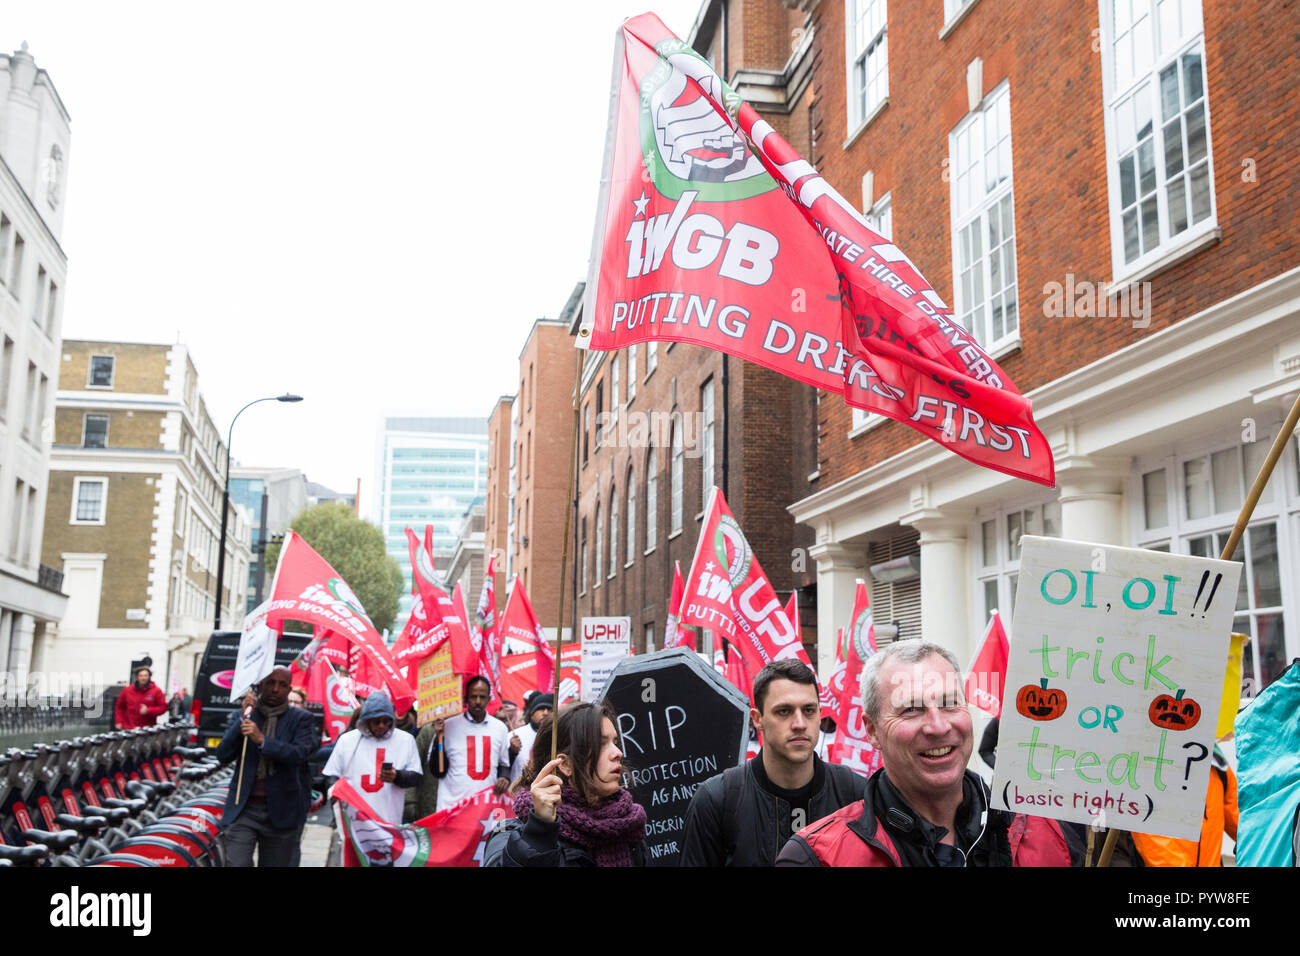 London, UK. 30th October, 2018. Members and supporters of the Independent Workers of Great Britain (IWGB) trade union march together with other precarious workers from the offices of Transport for London to the University of London via the Court of Appeal in support of Uber drivers who are seeking employment rights. The Court of Appeal will today hear an appeal by Uber against a ruling that its drivers are employees rather than self-employed workers. Credit: Mark Kerrison/Alamy Live News - Stock Image